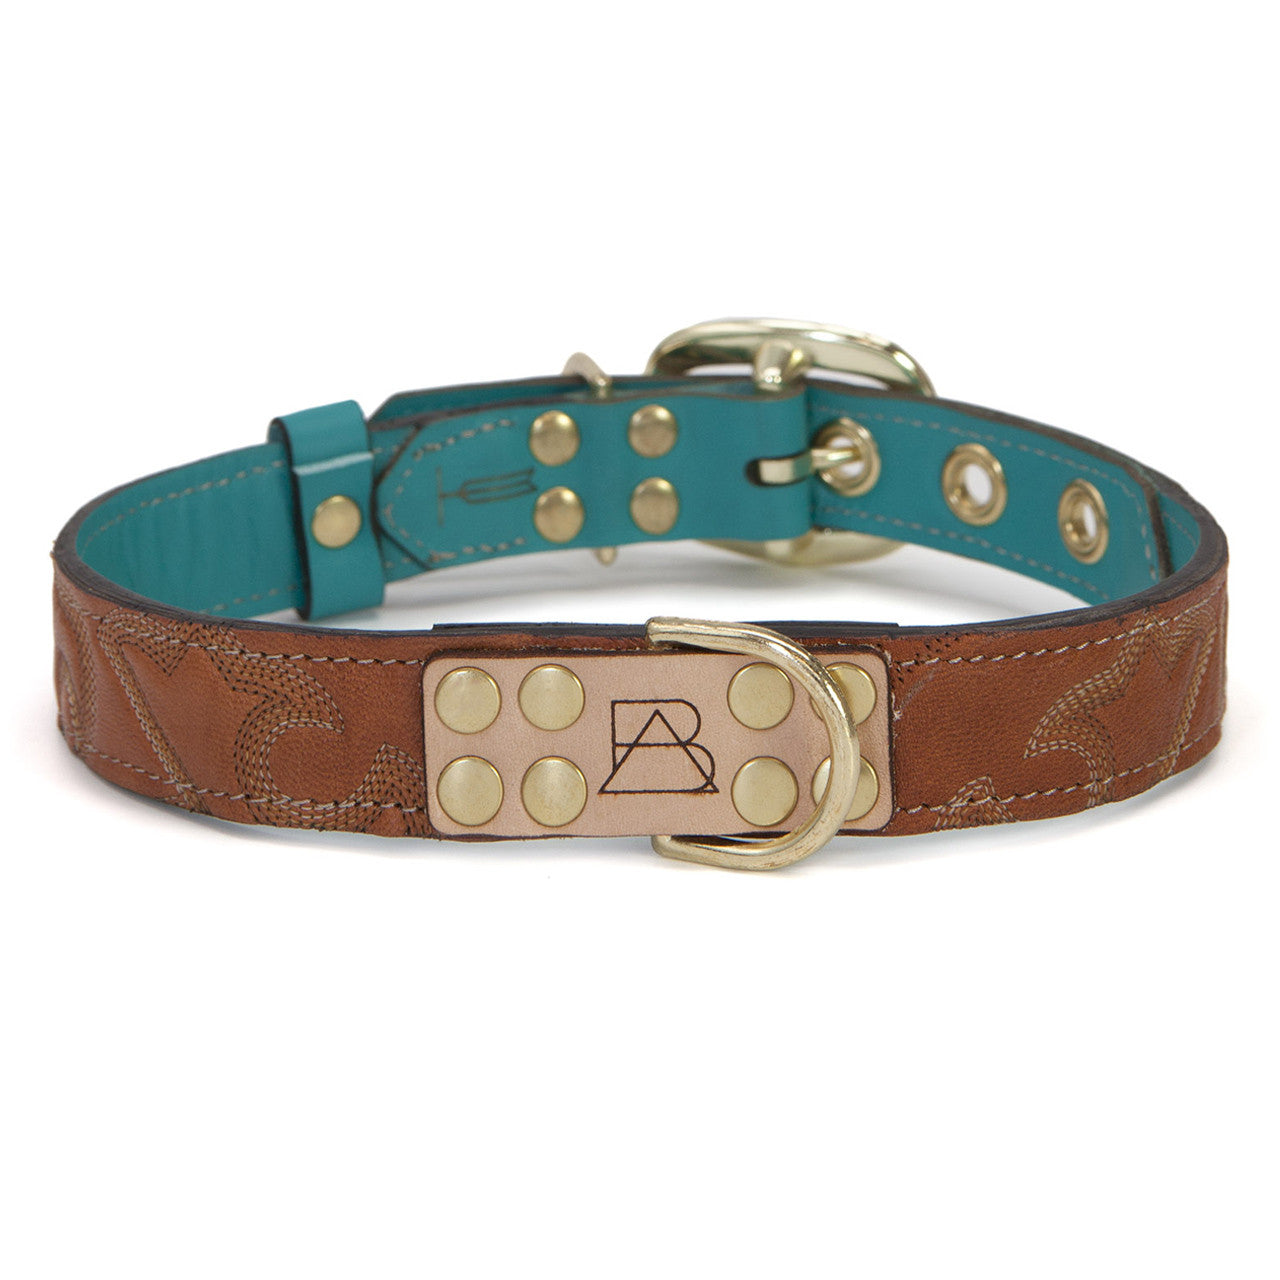 Turquoise Dog Collar with Brown Leather + Tan Stitching (front view)